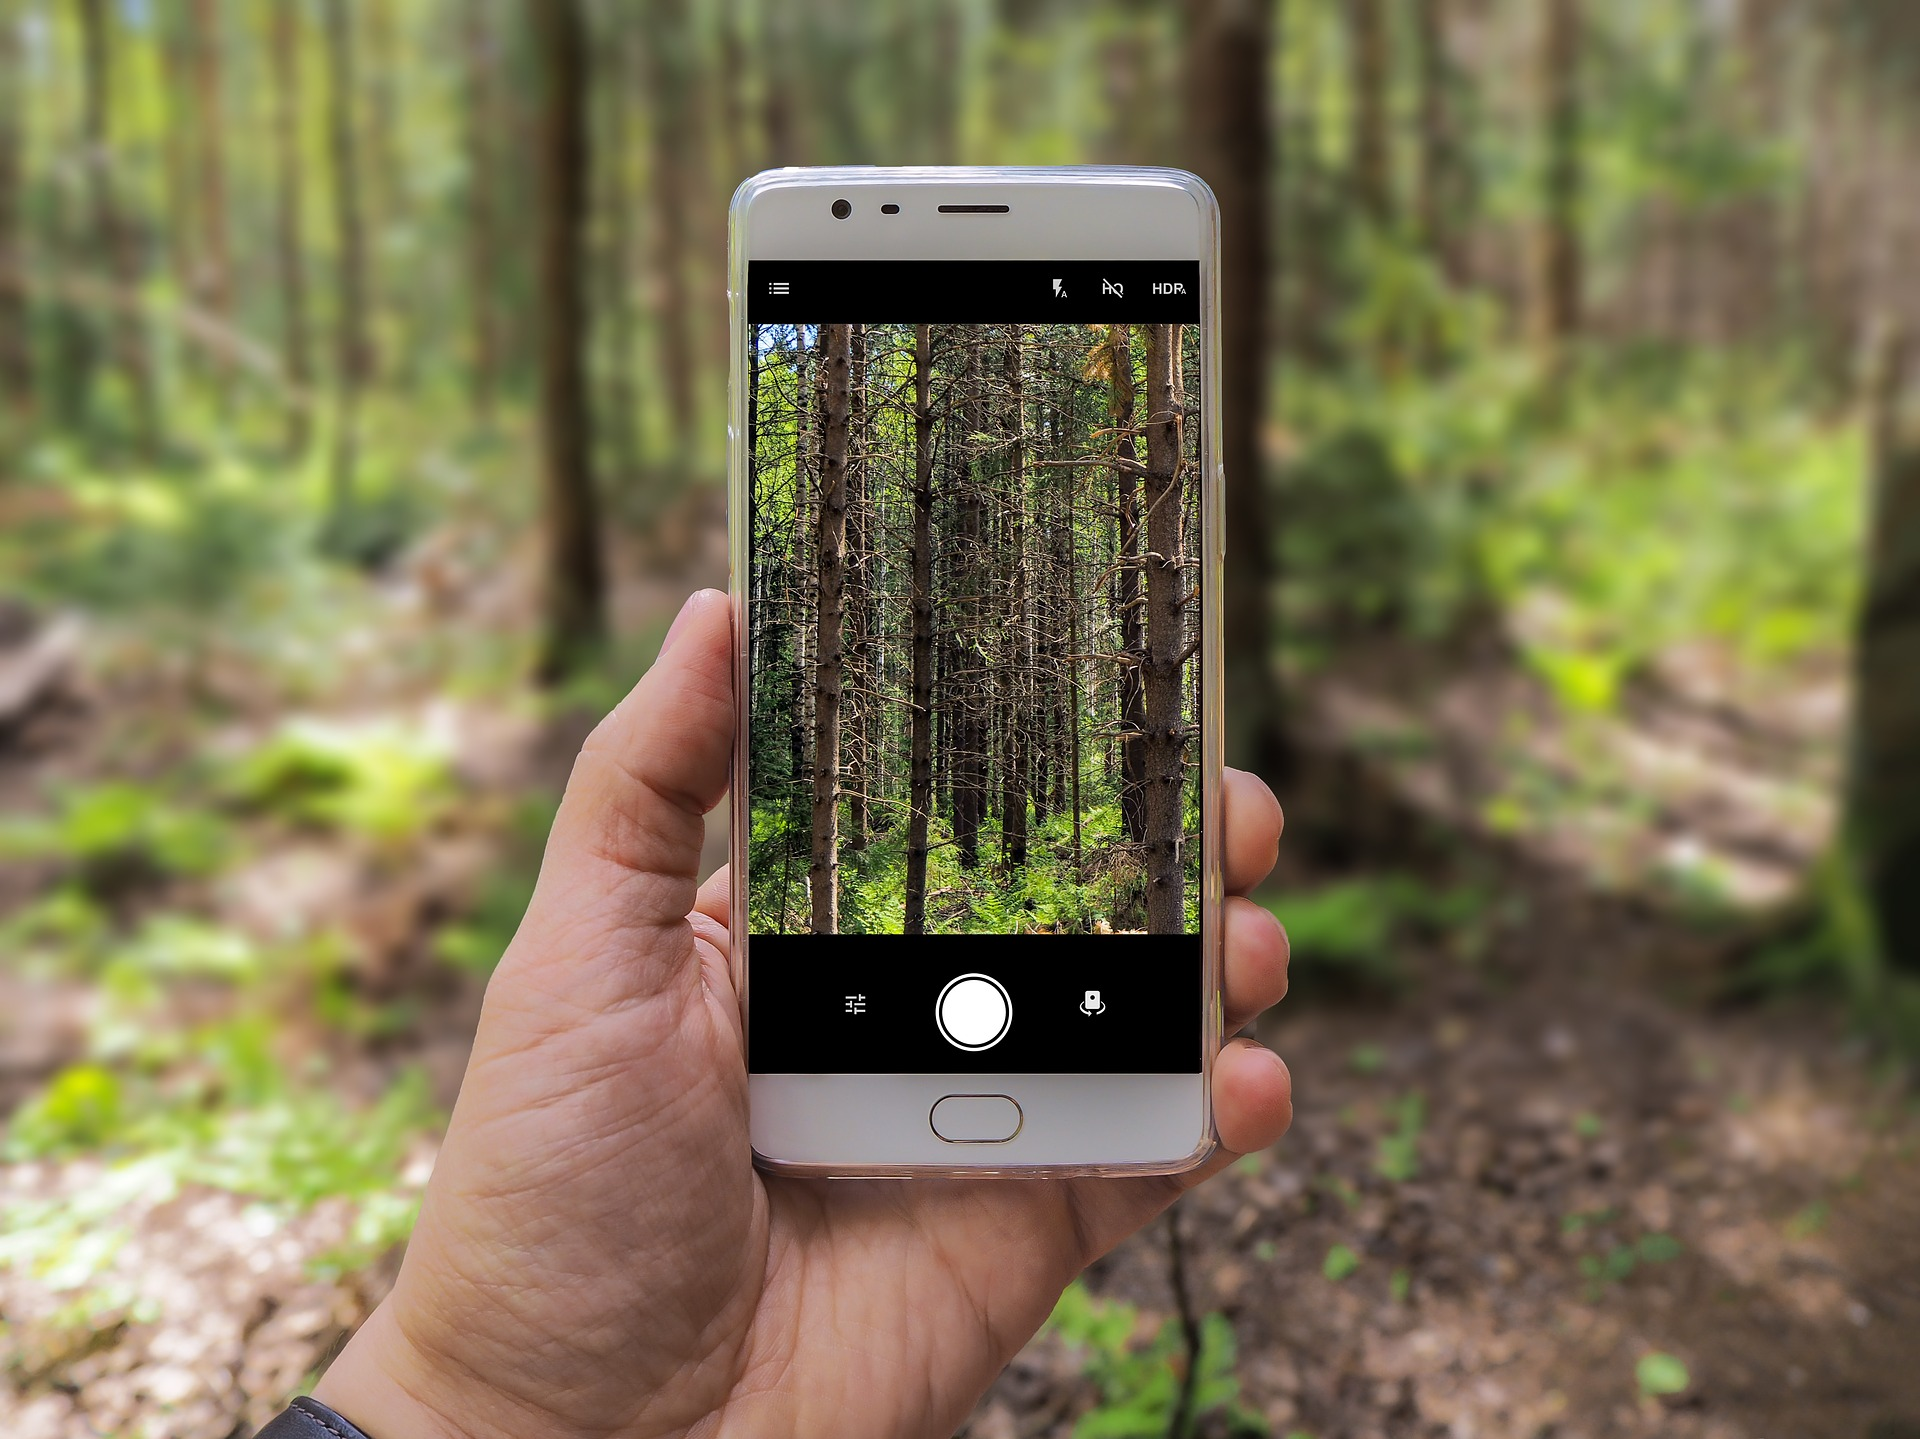 9 Helpful Plant Identification Apps for Budding Botanists